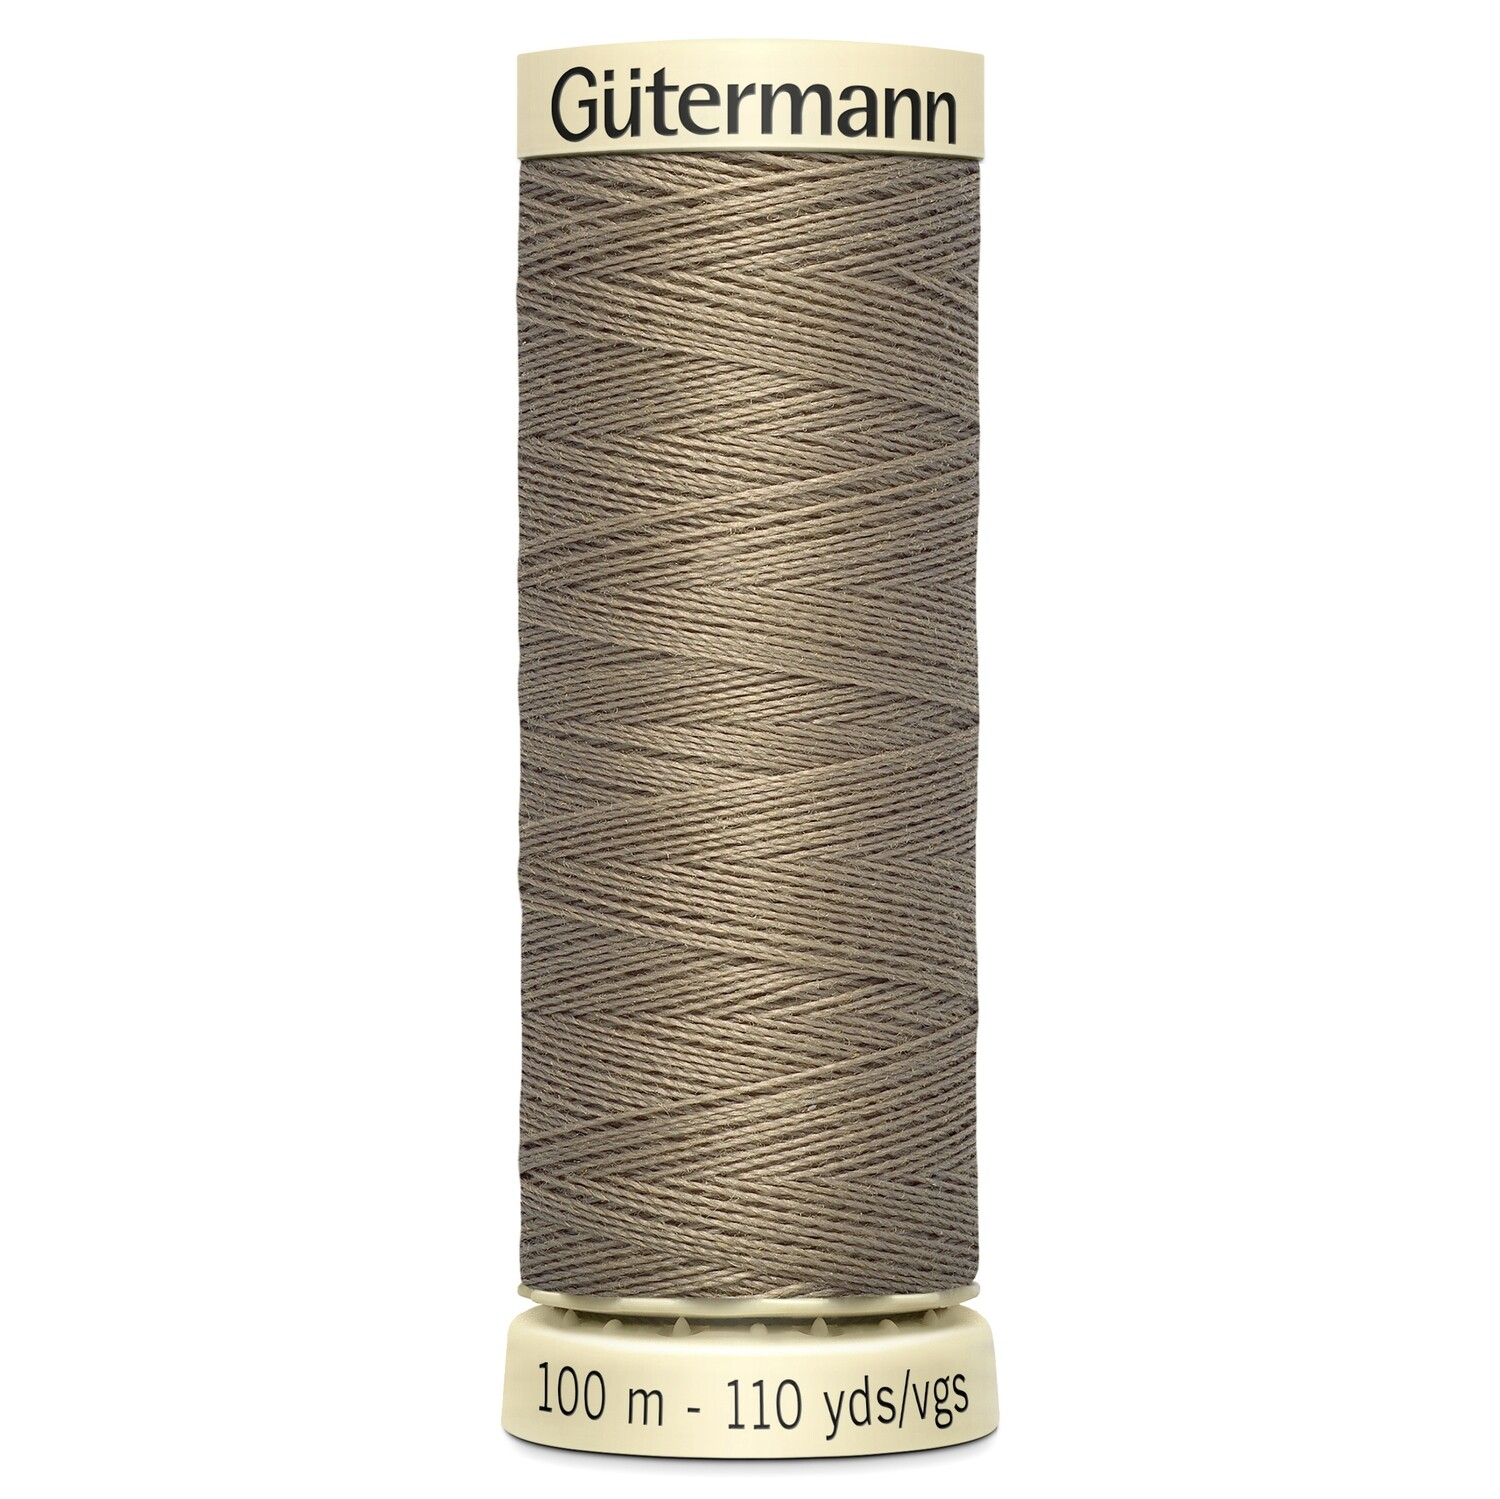 Gutermann Sew-All thread 724